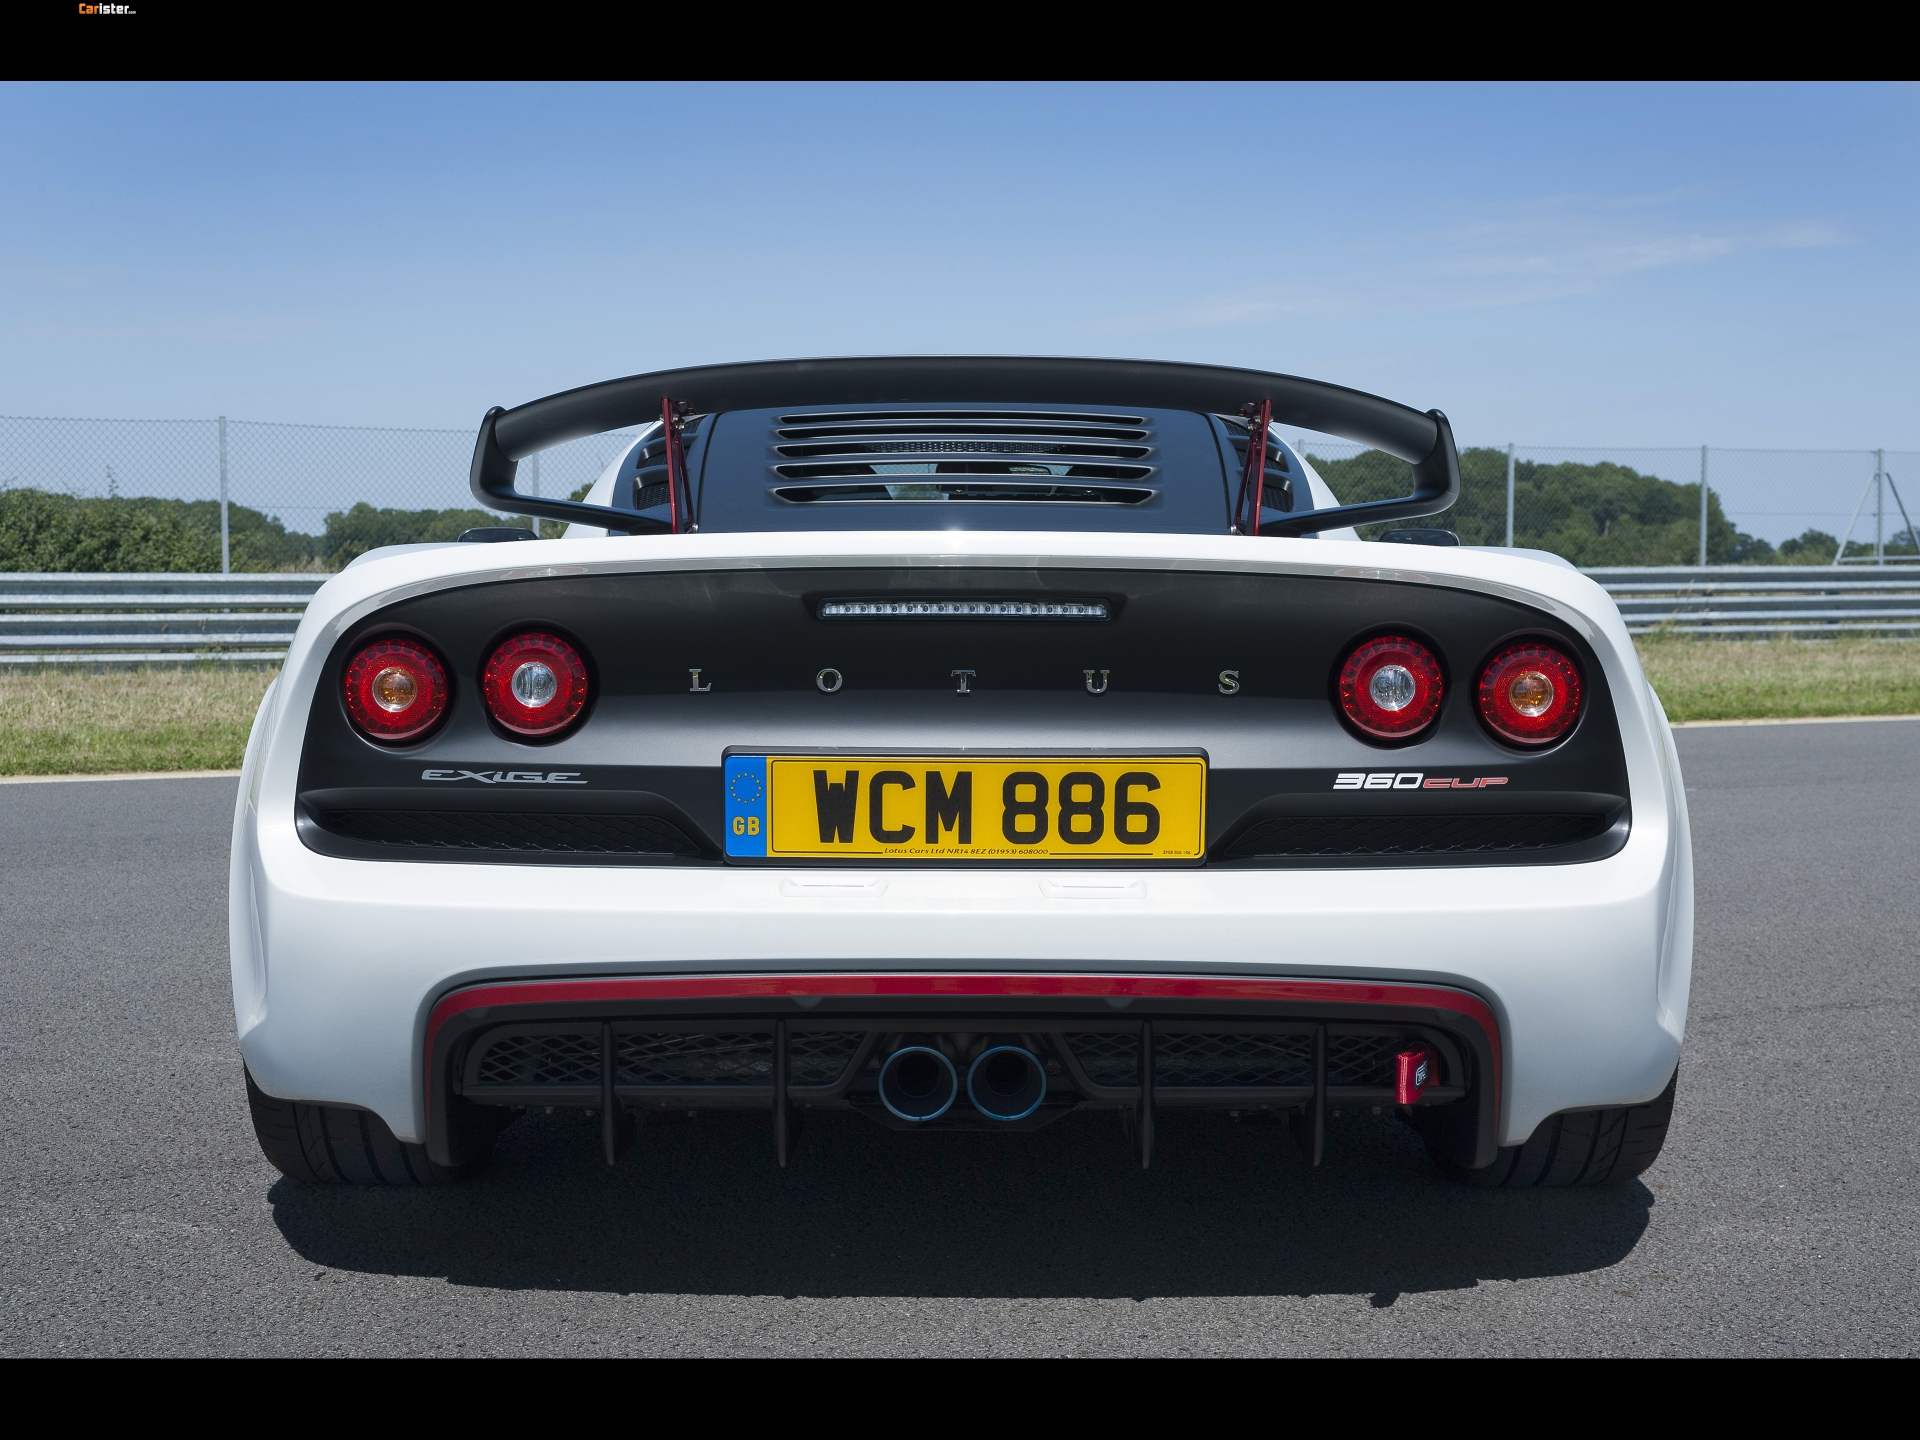 Lotus Exige 360 Cup 2016 - Photo 12 - Taille: 1920x1440